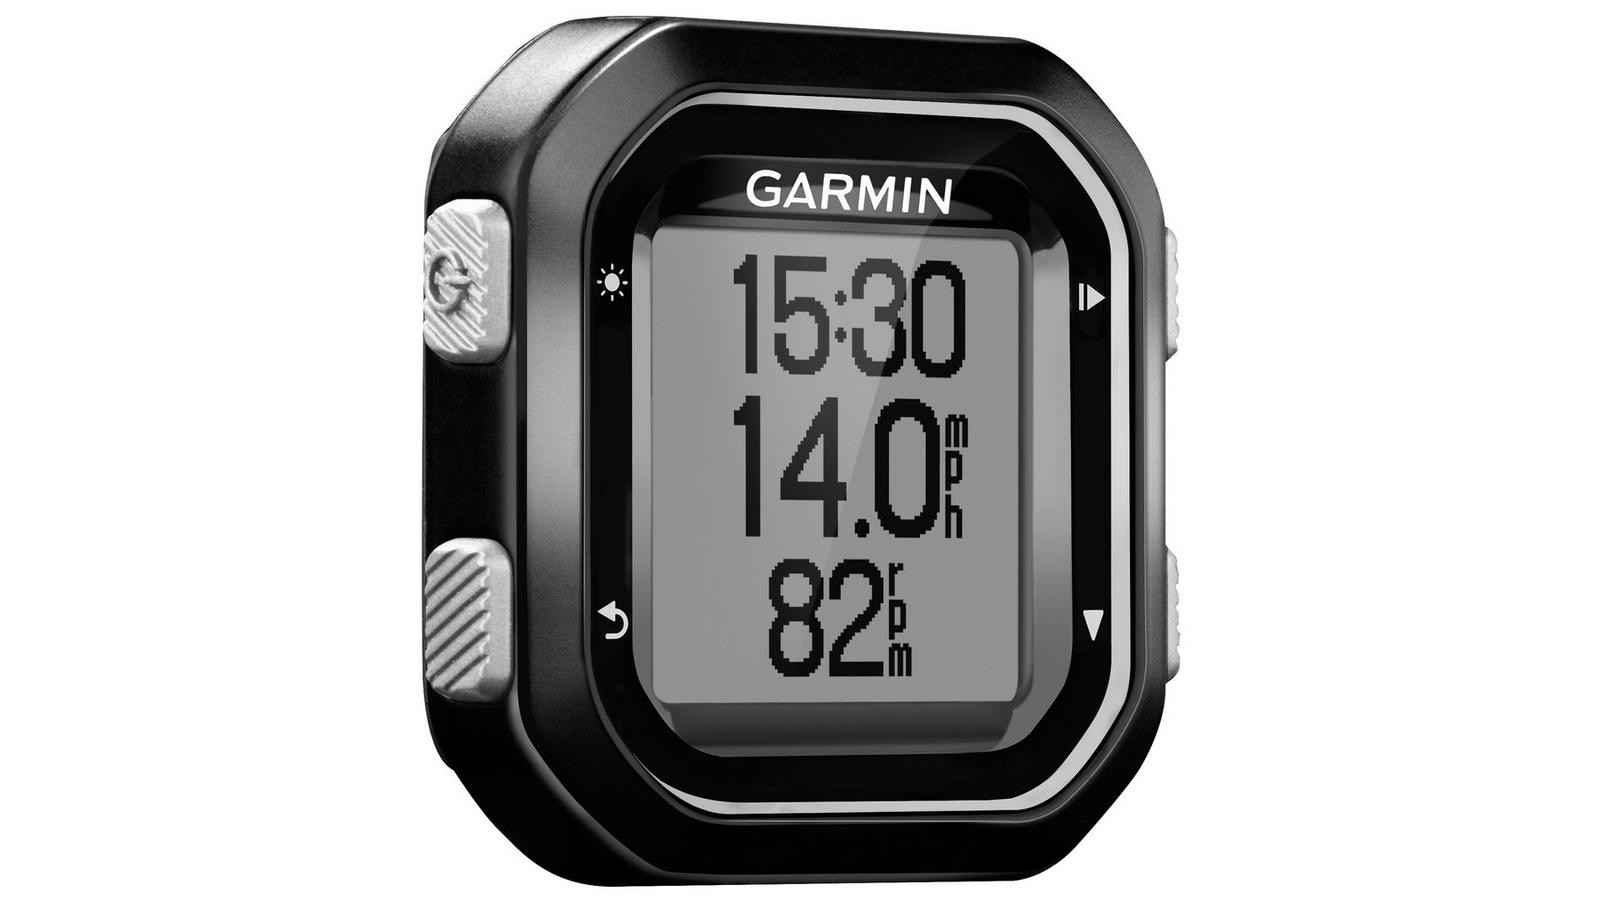 It's rare to find a discounted Garmin